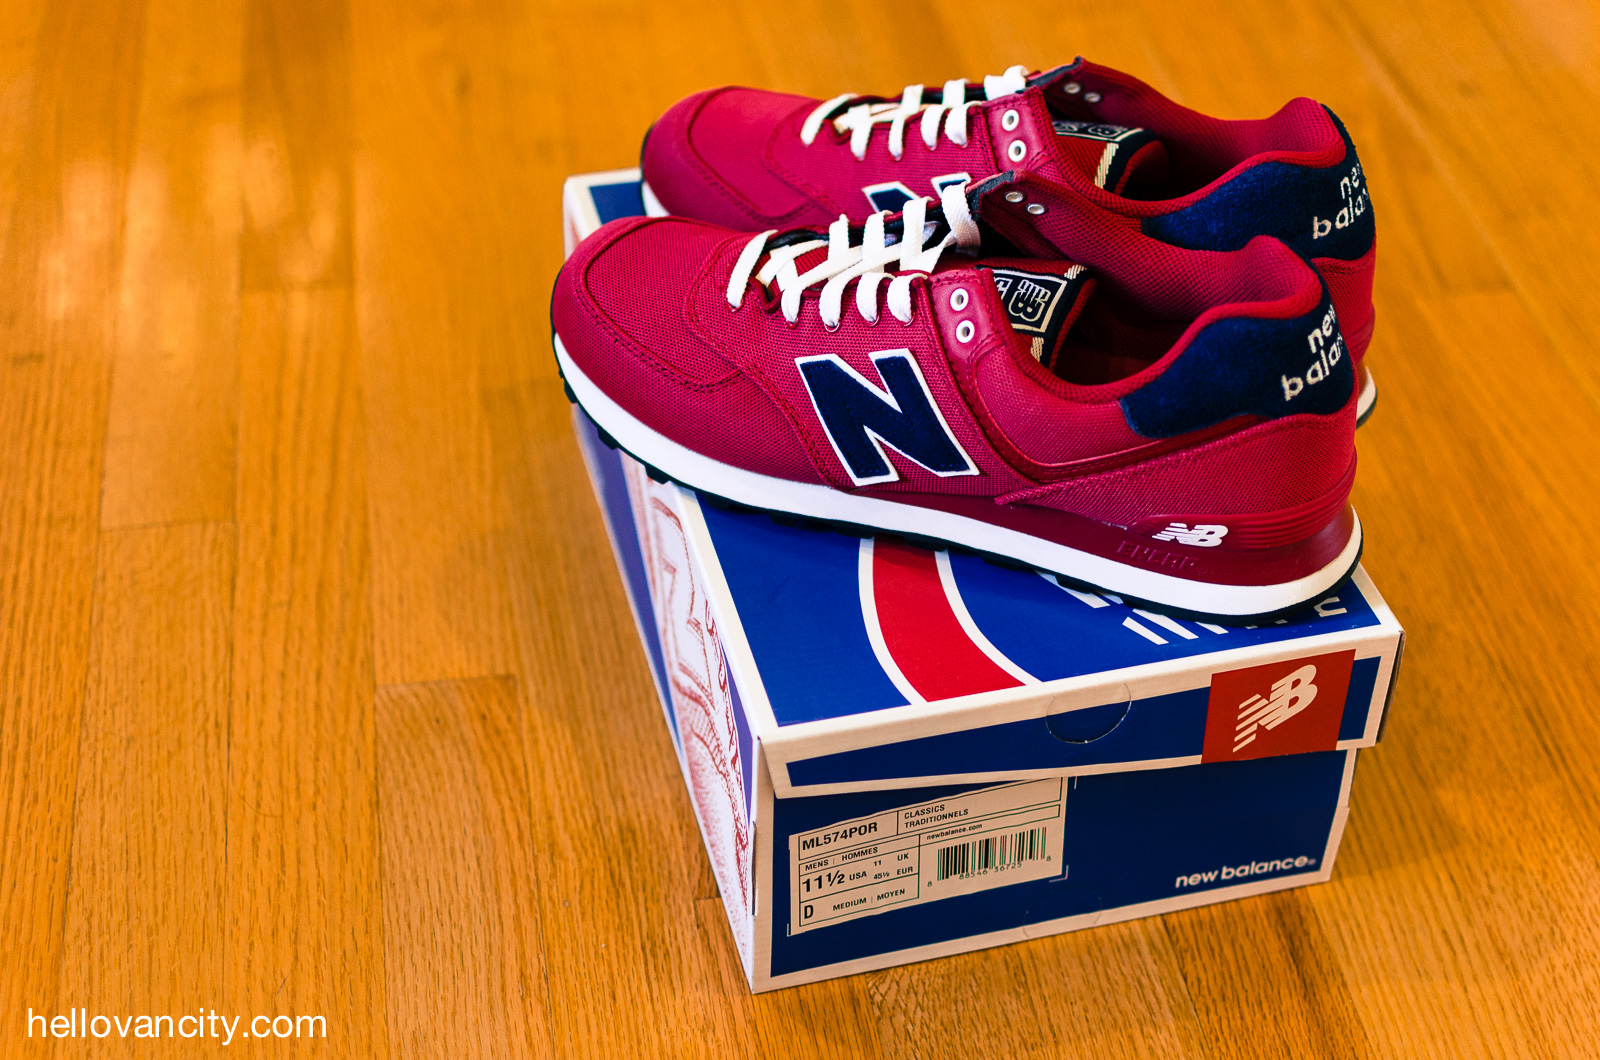 Sneaker Unboxing: New Balance 574 Pique Polo Pack